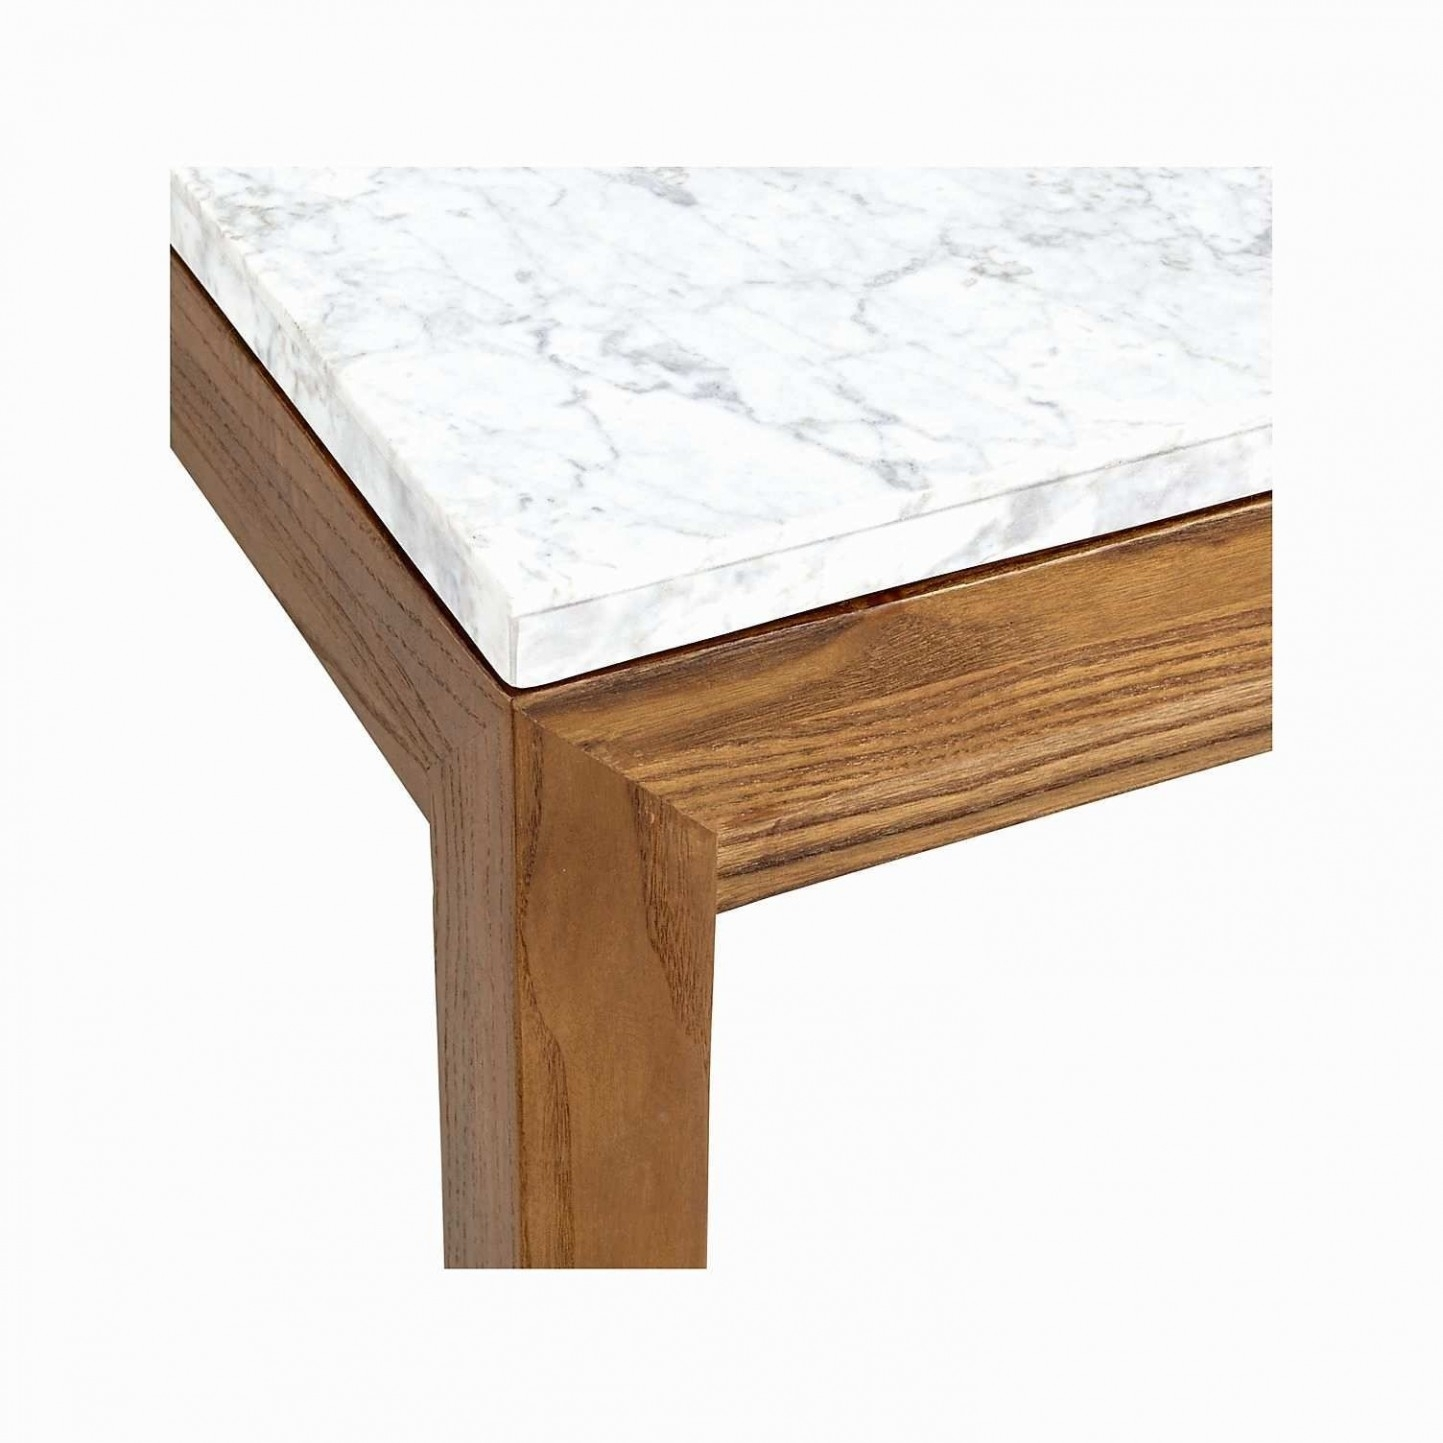 Lime Wash Coffee Table Best Of Fascinating 70 Outdoor Ceiling Fans intended for Limewash Coffee Tables (Image 10 of 30)